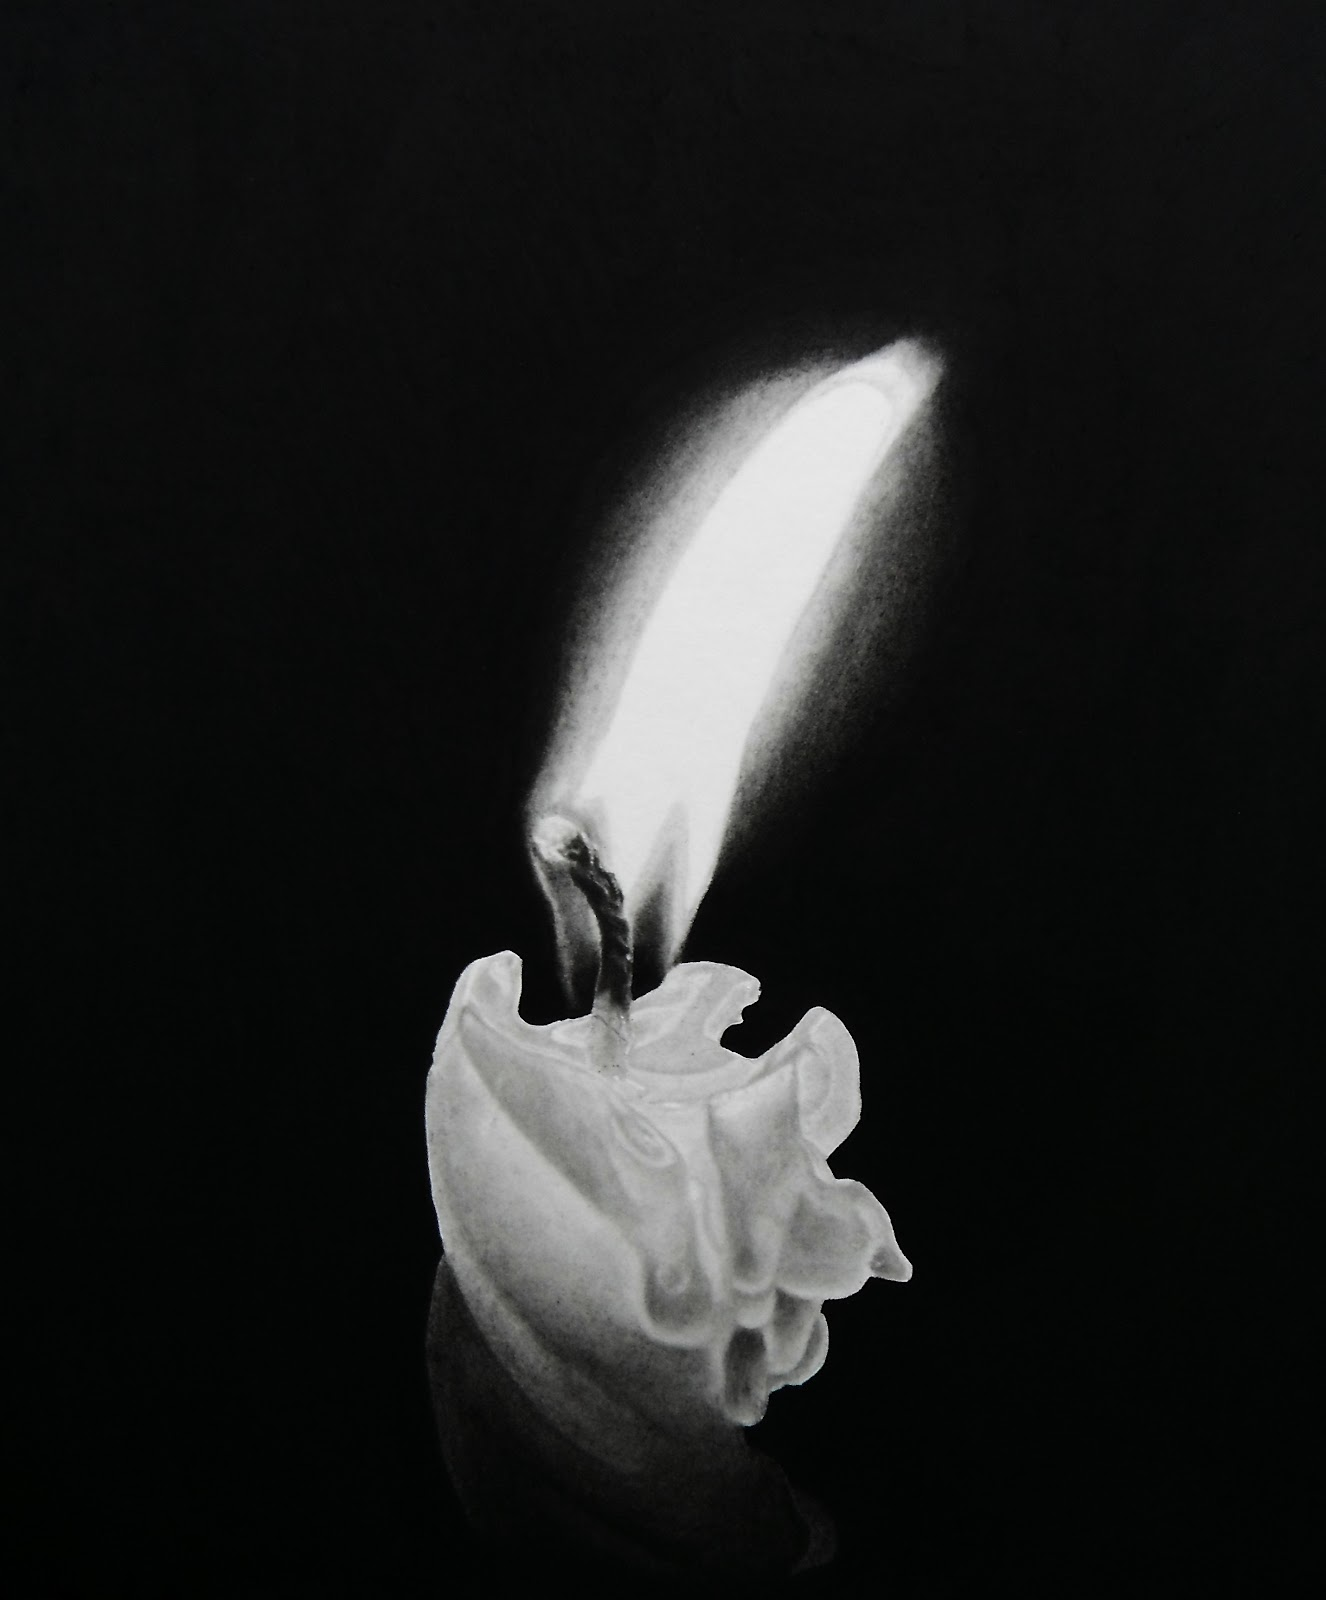 15-Iluminacion-Candle-Norlan-Vilchez-Cultural-Diversity-Drawings-with-Charcoal-and-Graphite-www-designstack-co